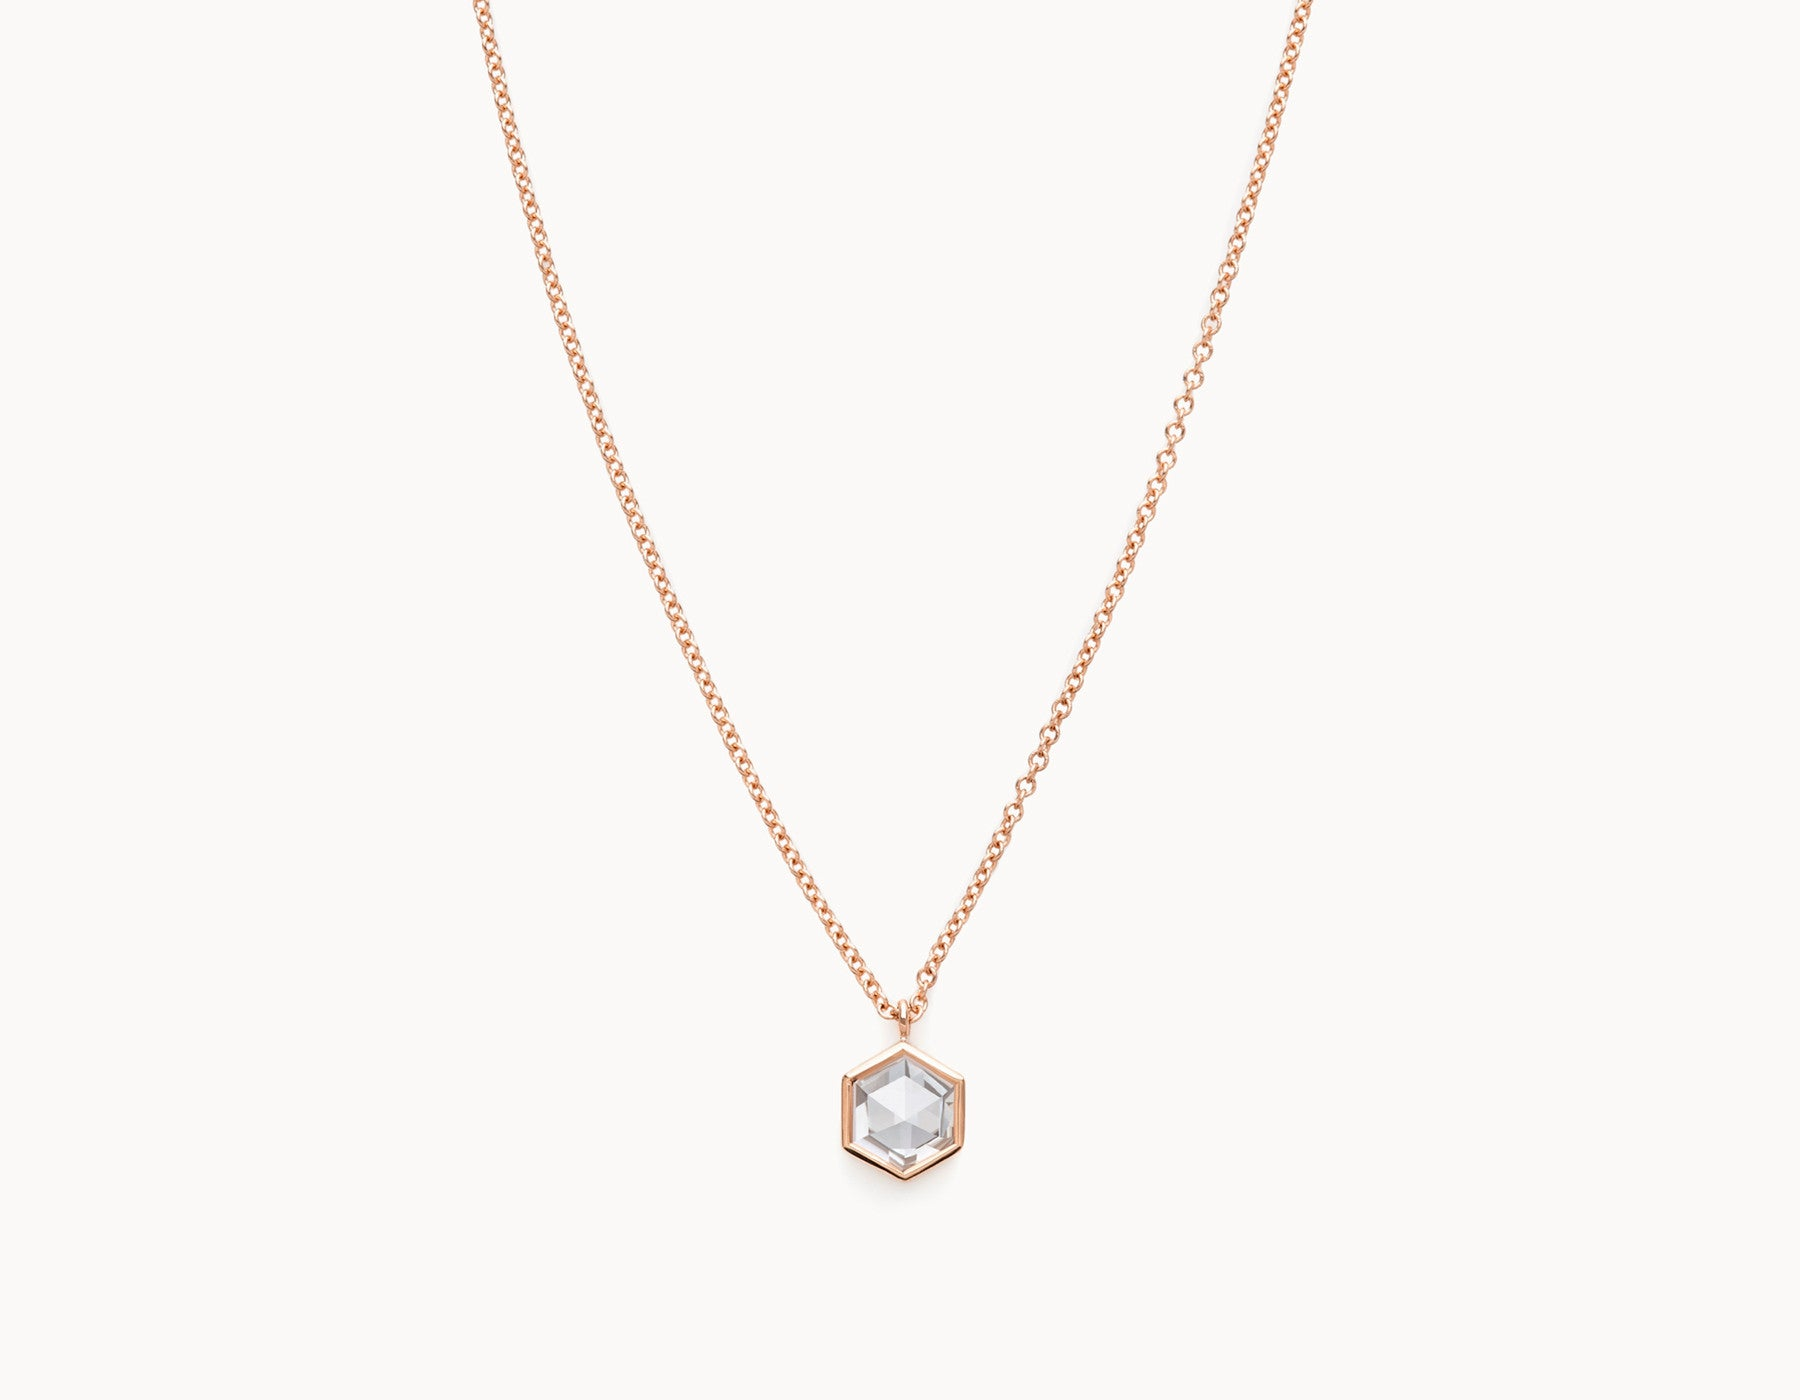 Vrai & Oro Black Label Rose Cut Hex Diamond Necklace